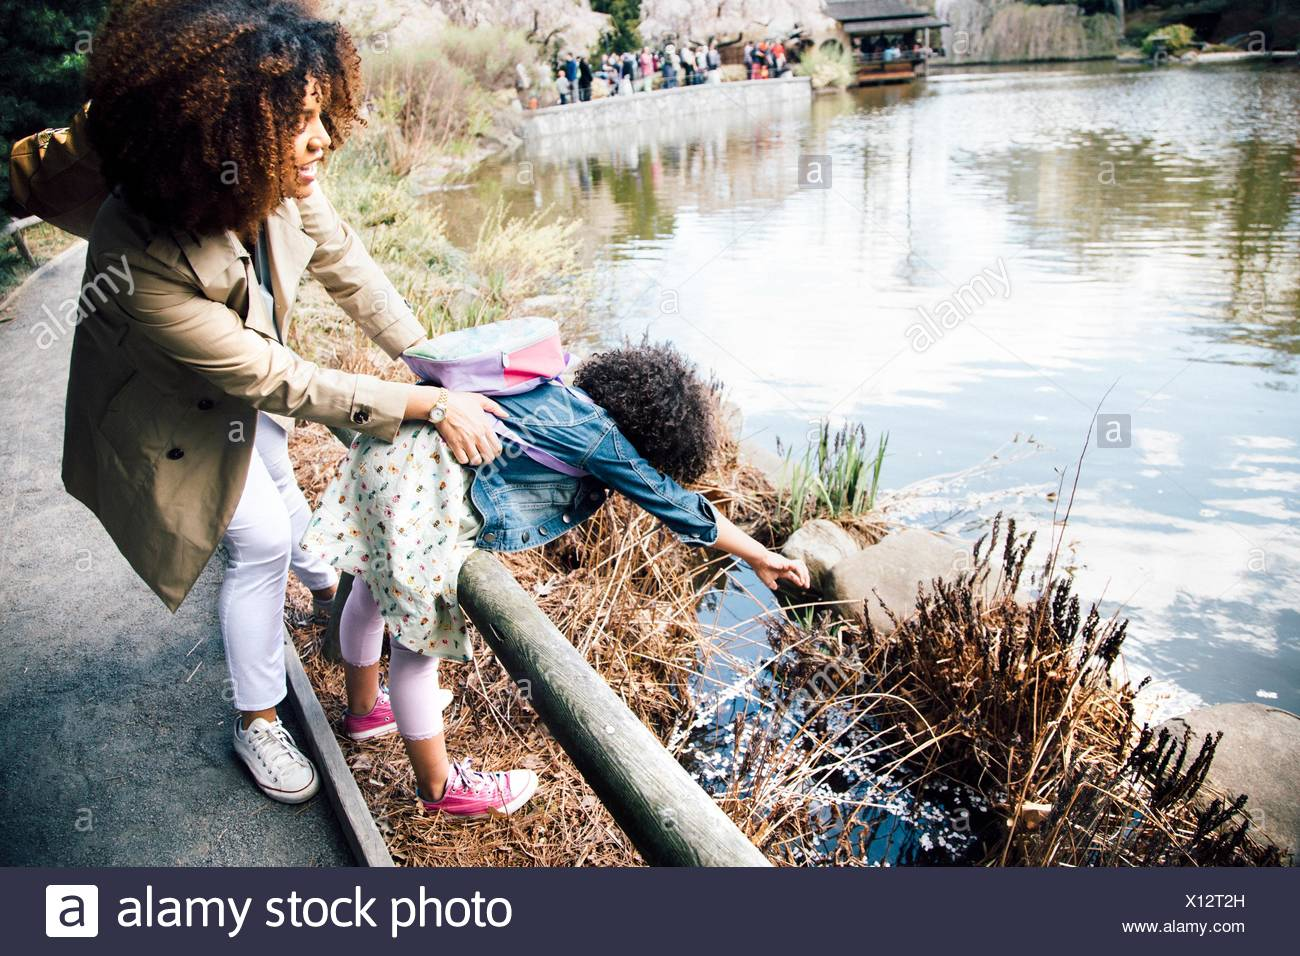 Mother gripping daughter stretching over guard rail to touch plant - Stock Image